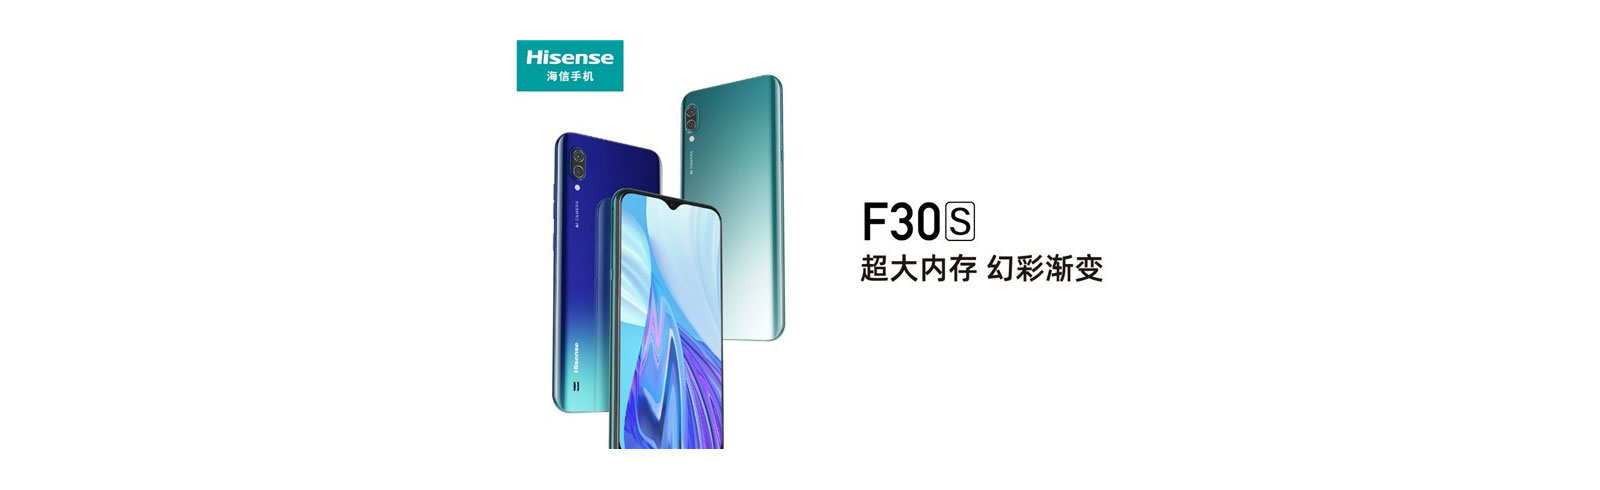 Hisense F30s is launched in China, costs CNY 1099